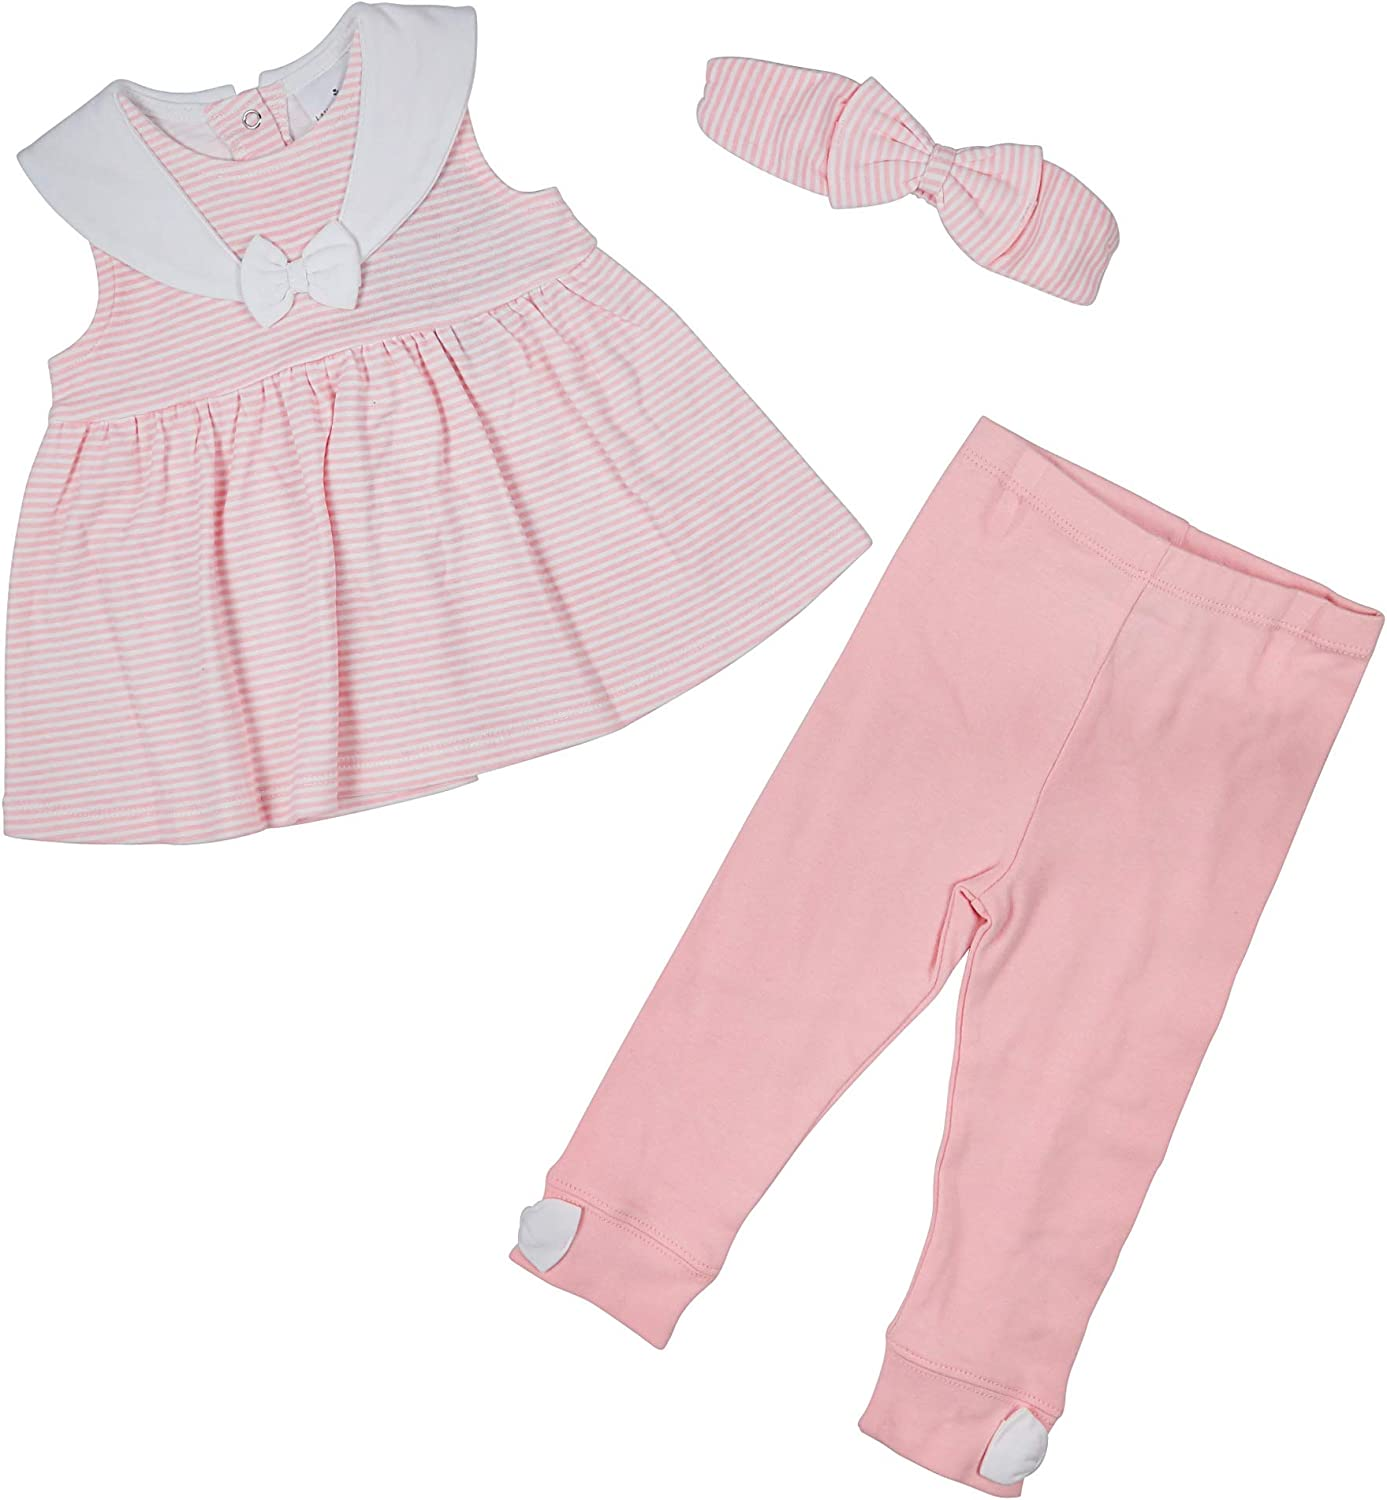 Laura Ashley Infant Baby Girl 3-Piece Pants Baltimore Mall Top and Ruffle with Jacksonville Mall